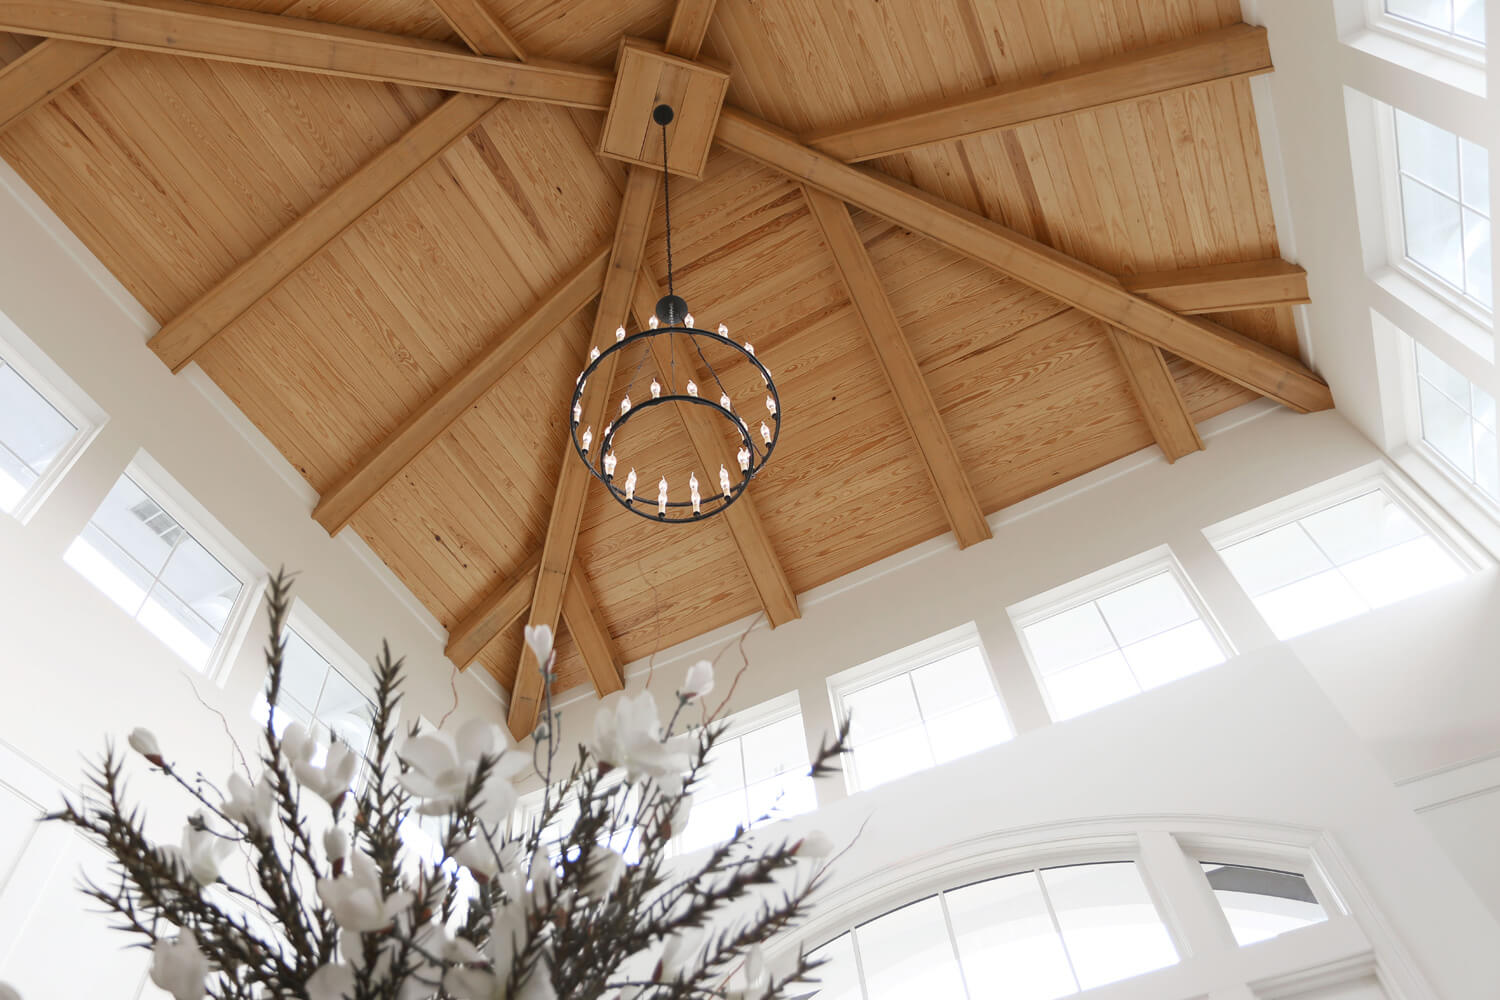 The Morgan Apartments Clubhouse Designed by Foshee Architecture - Interior view of the Wood Tower Ceiling